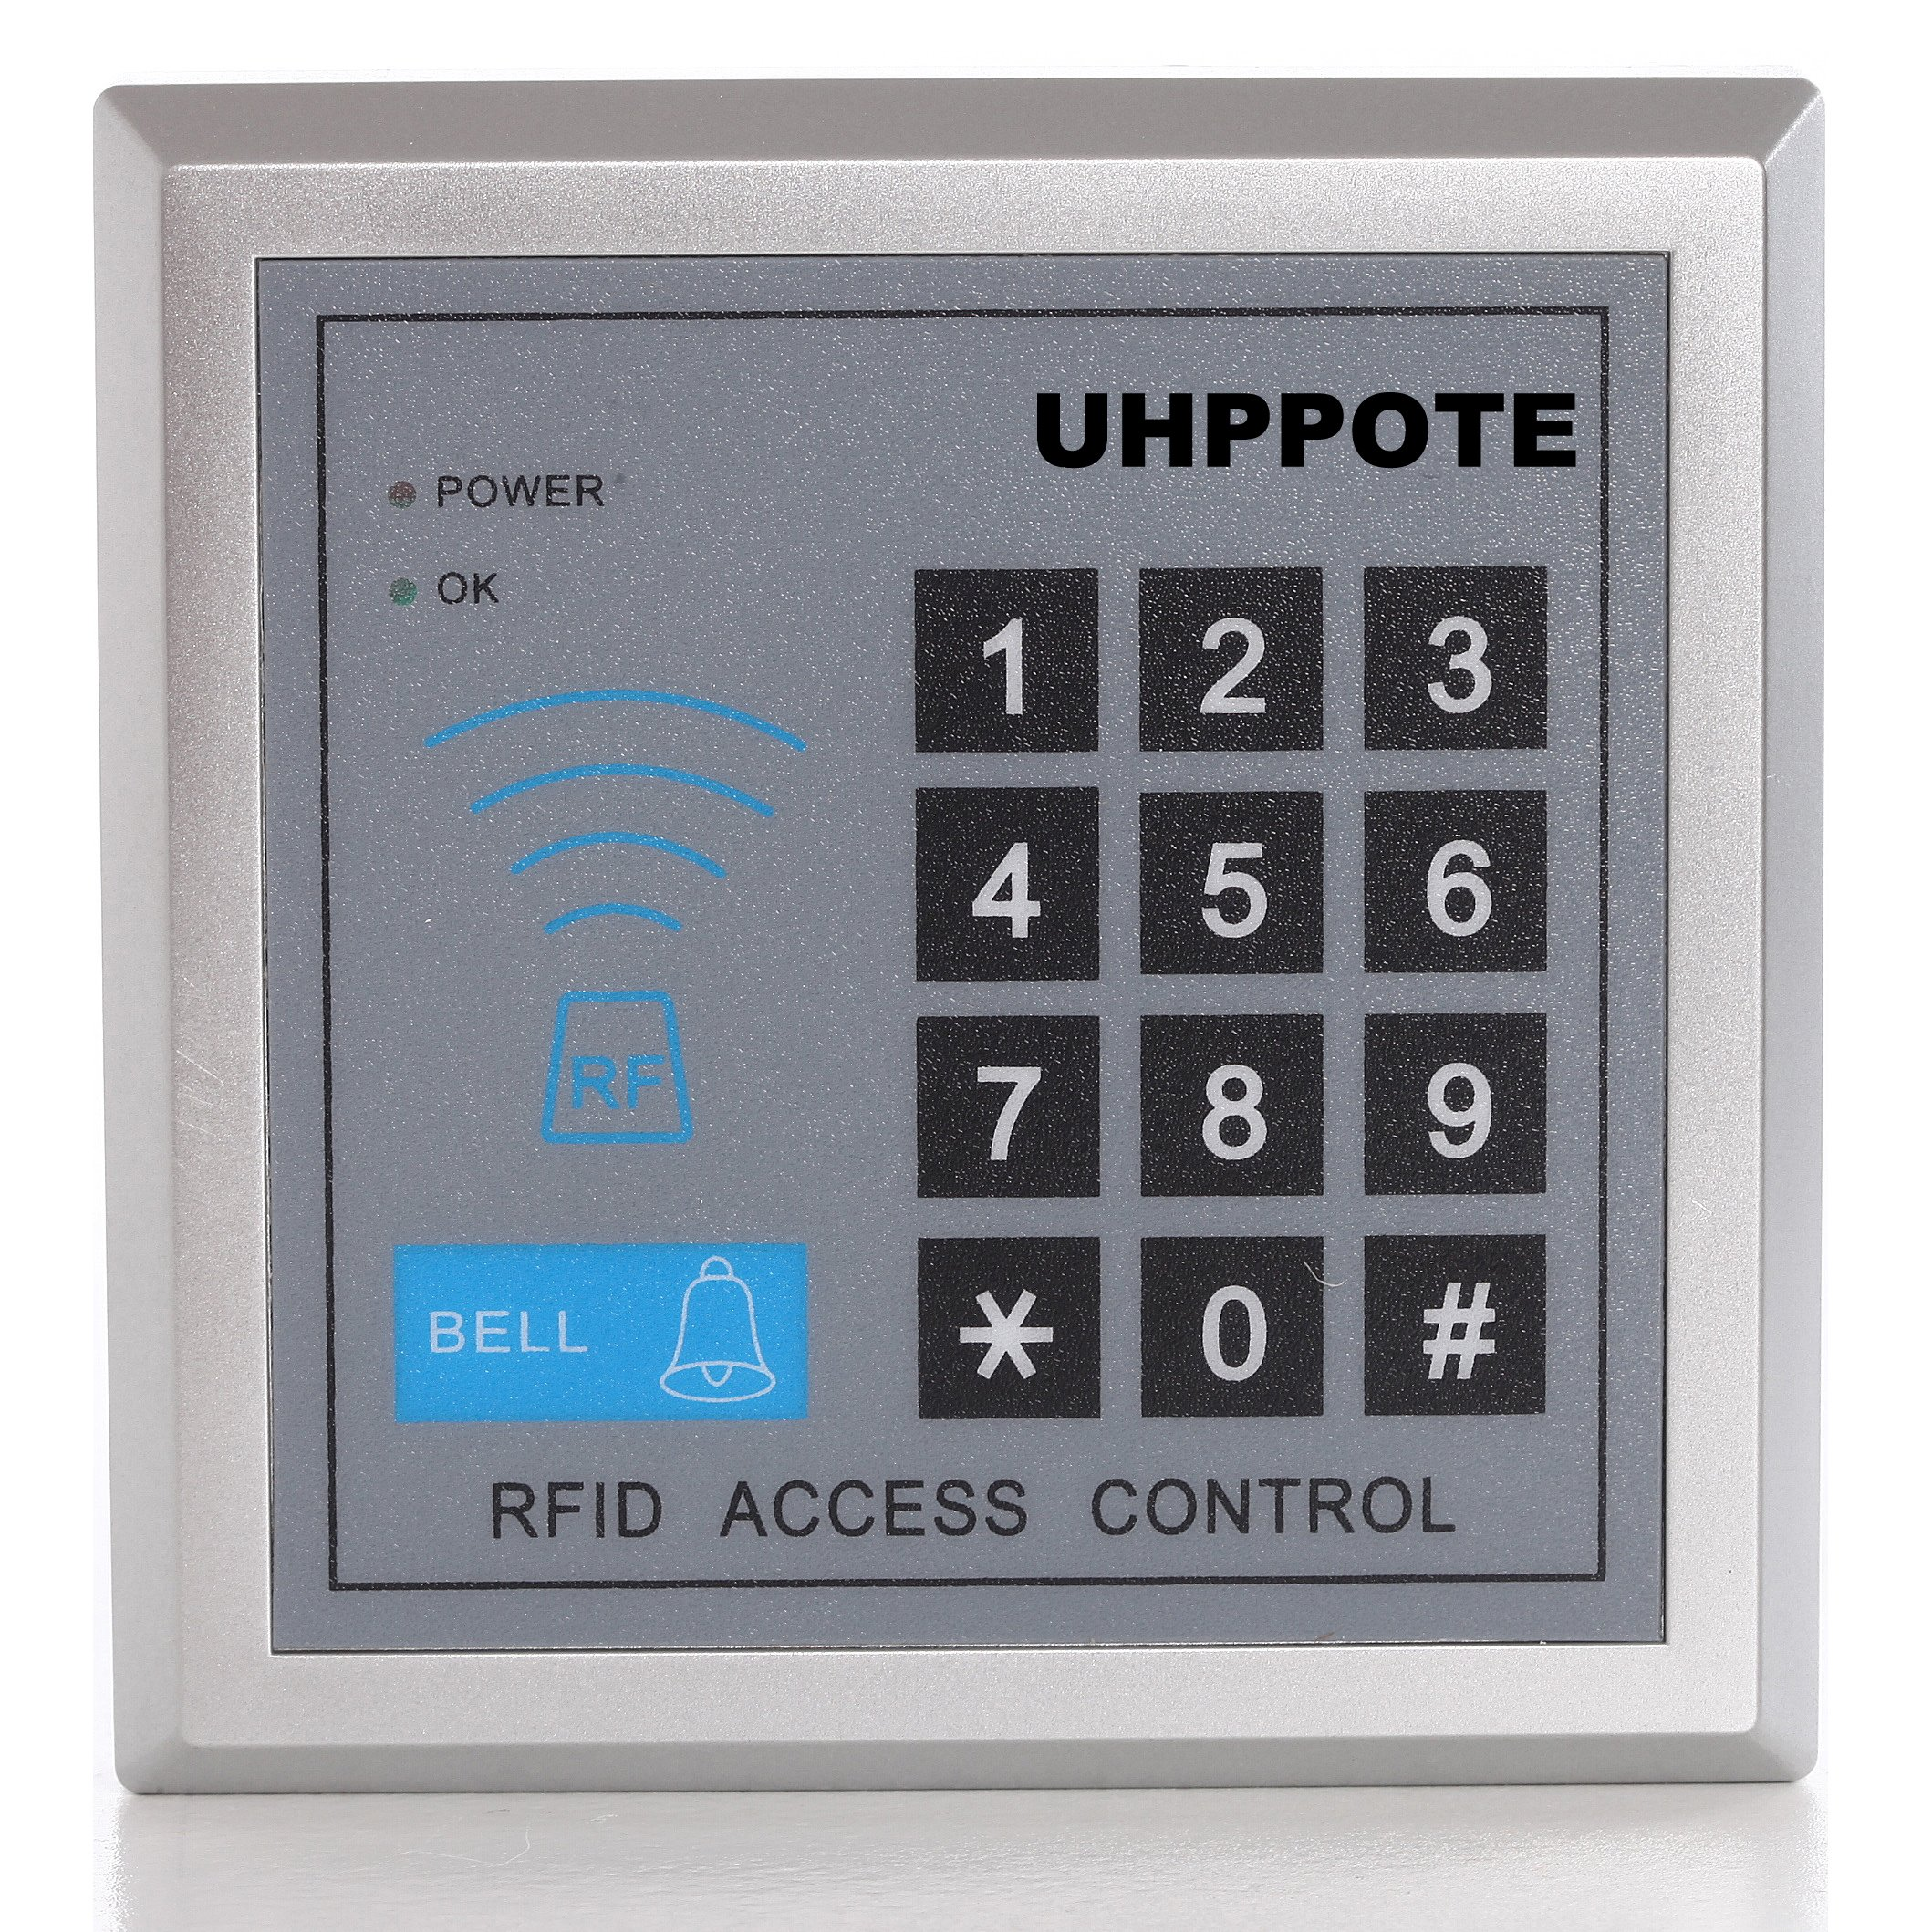 UHPPOTE 125KHz RFID ID Access Control Stand Alone Single Door System With Keypad Support 500 User